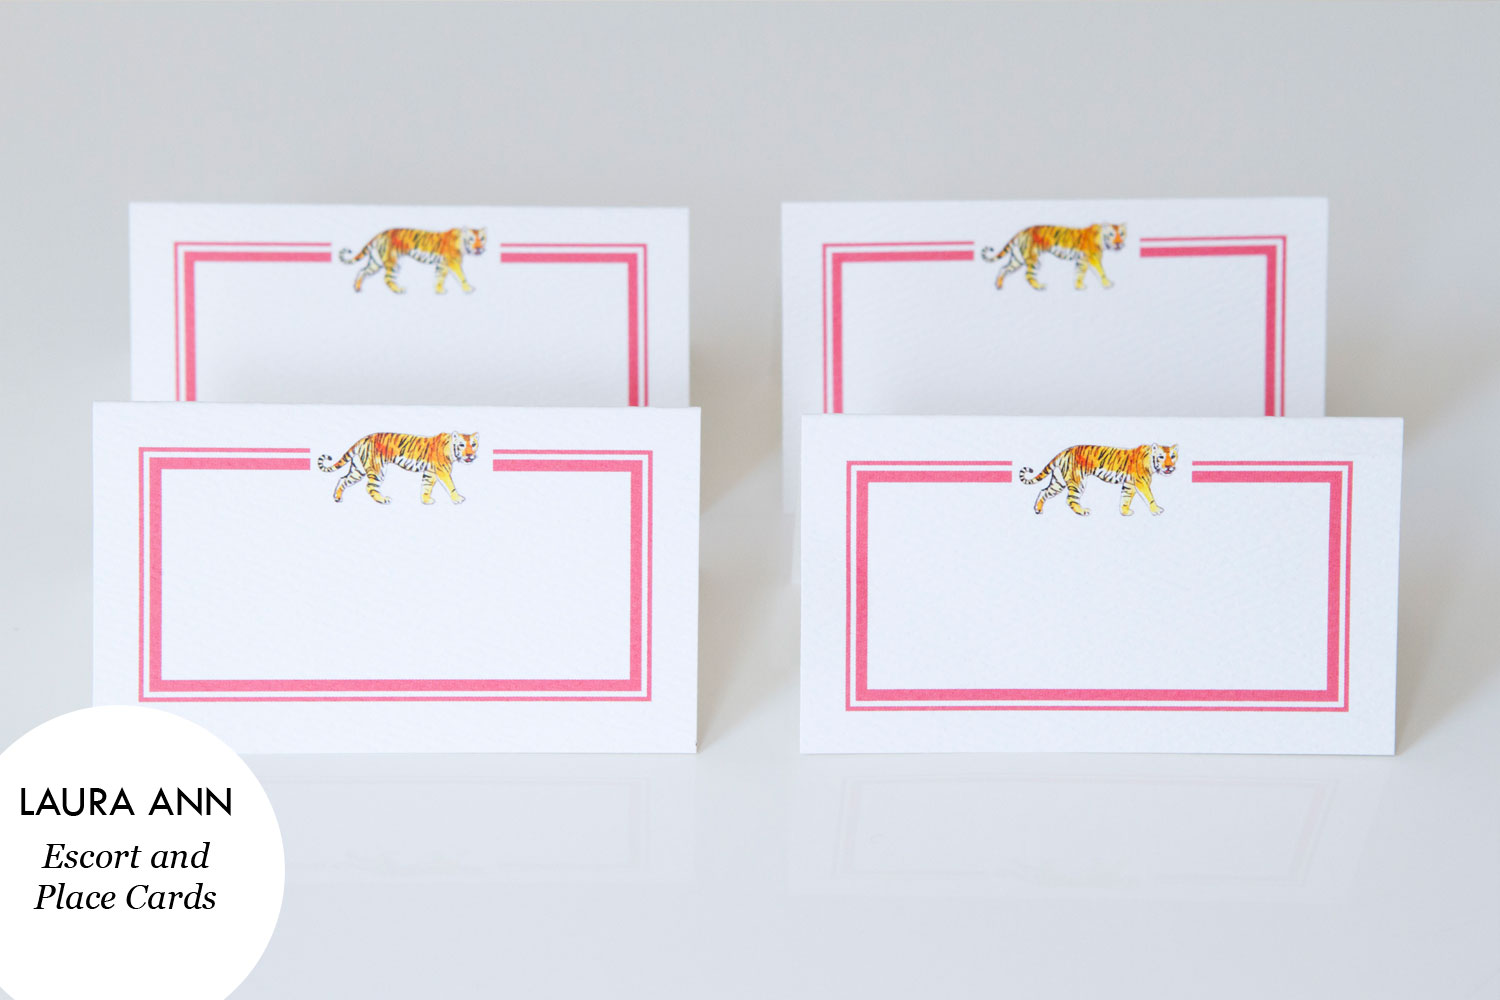 escort-and-place-cards-cards.jpg